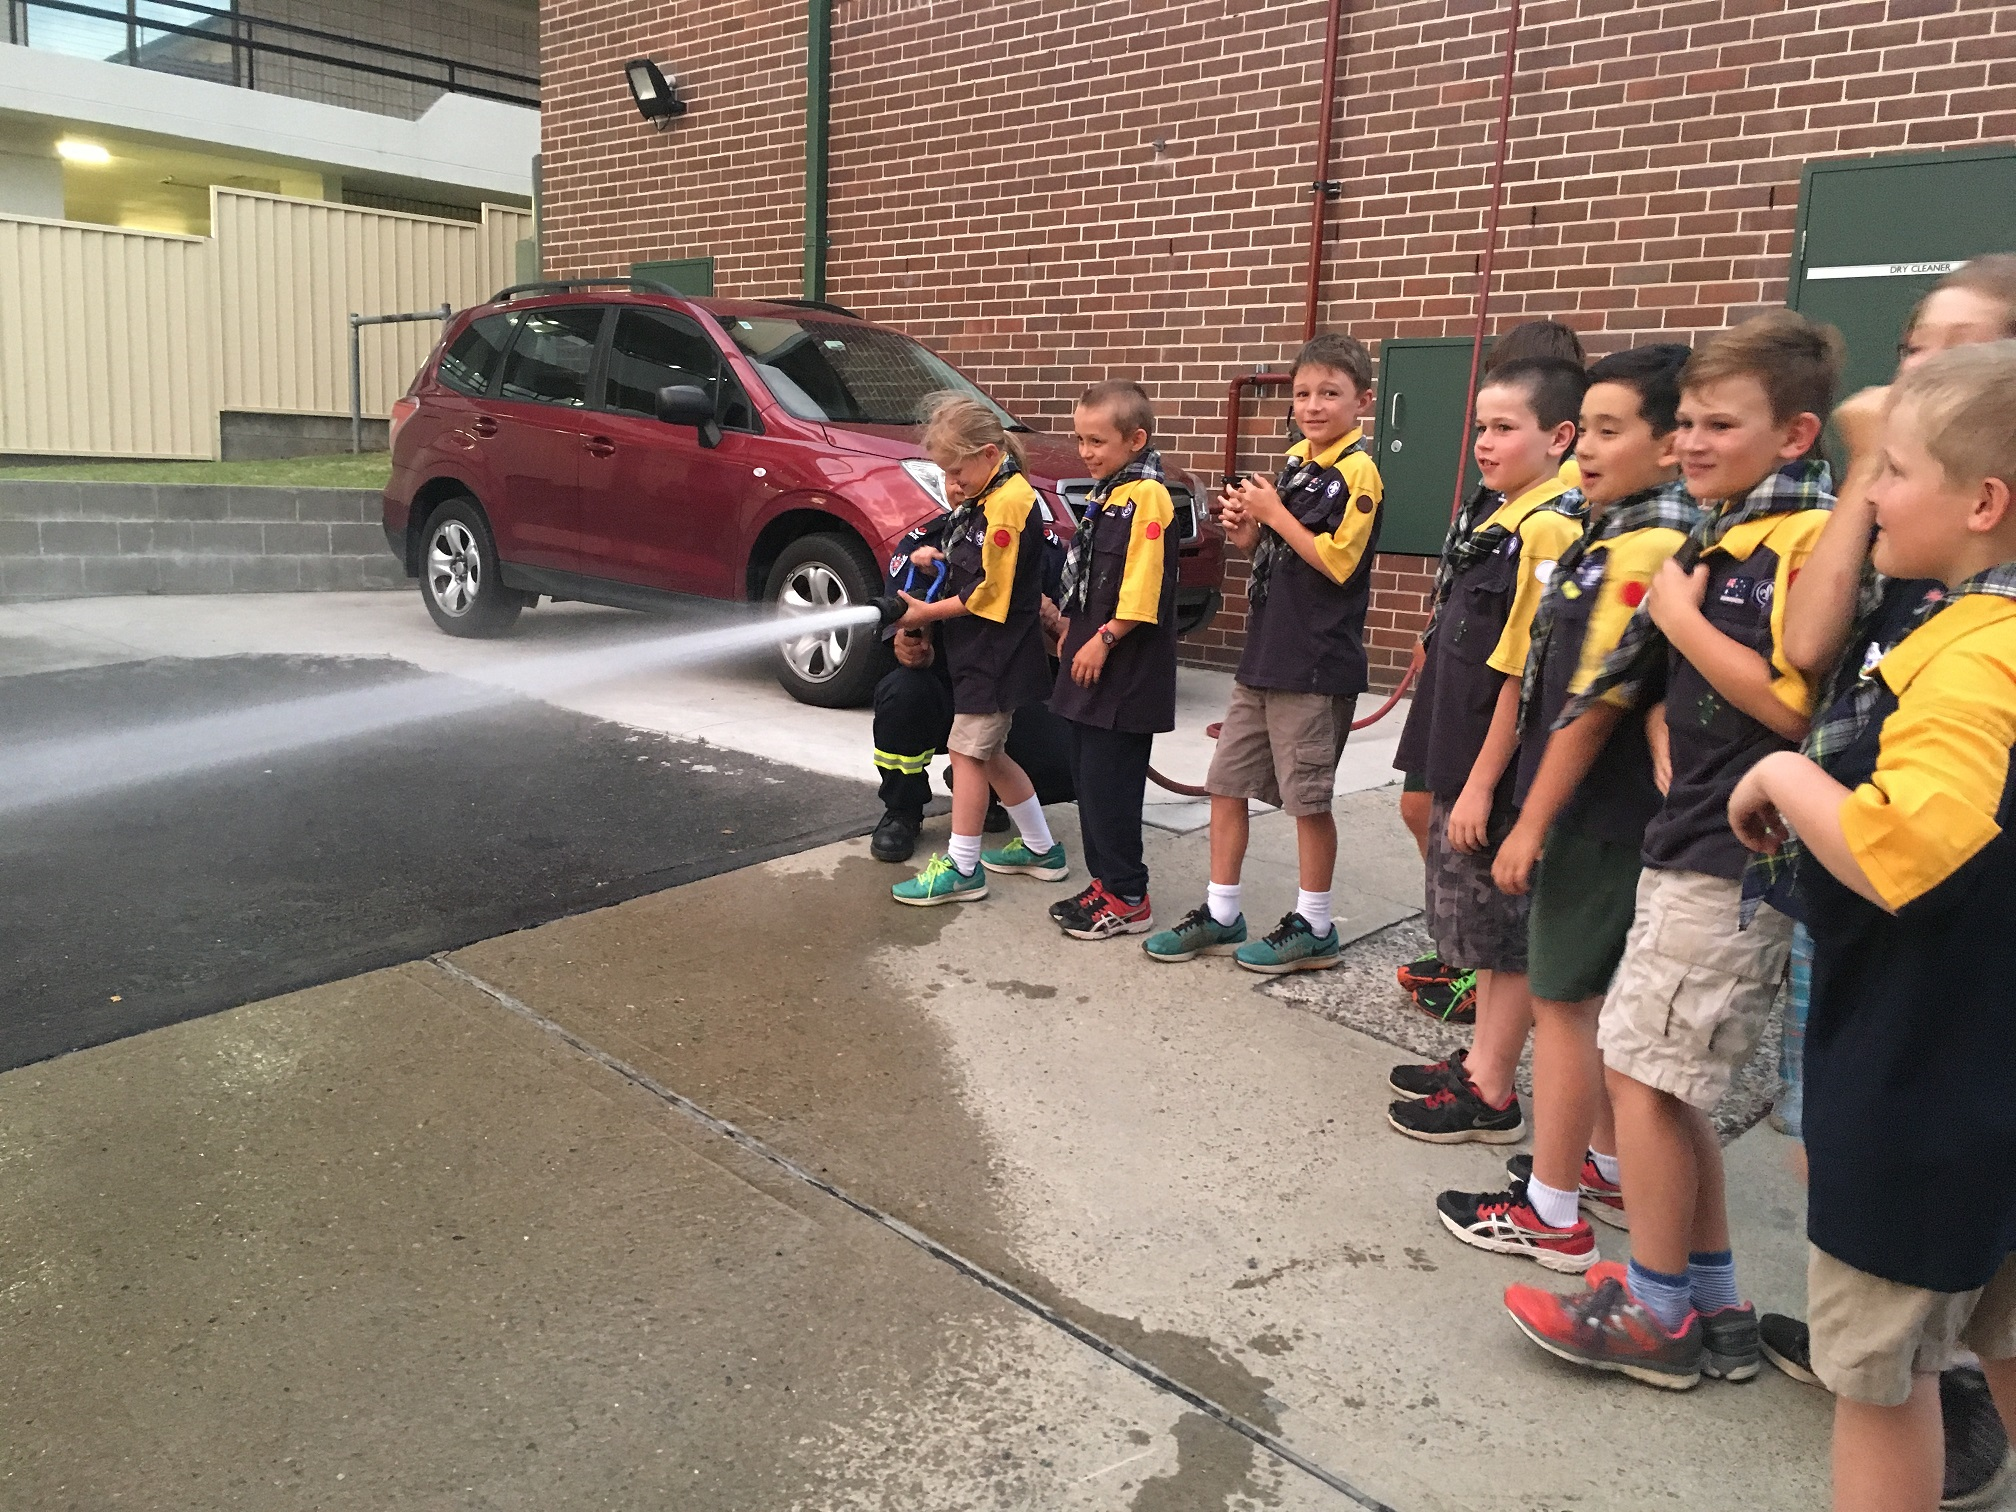 Cubs having a turn on a fire hose!